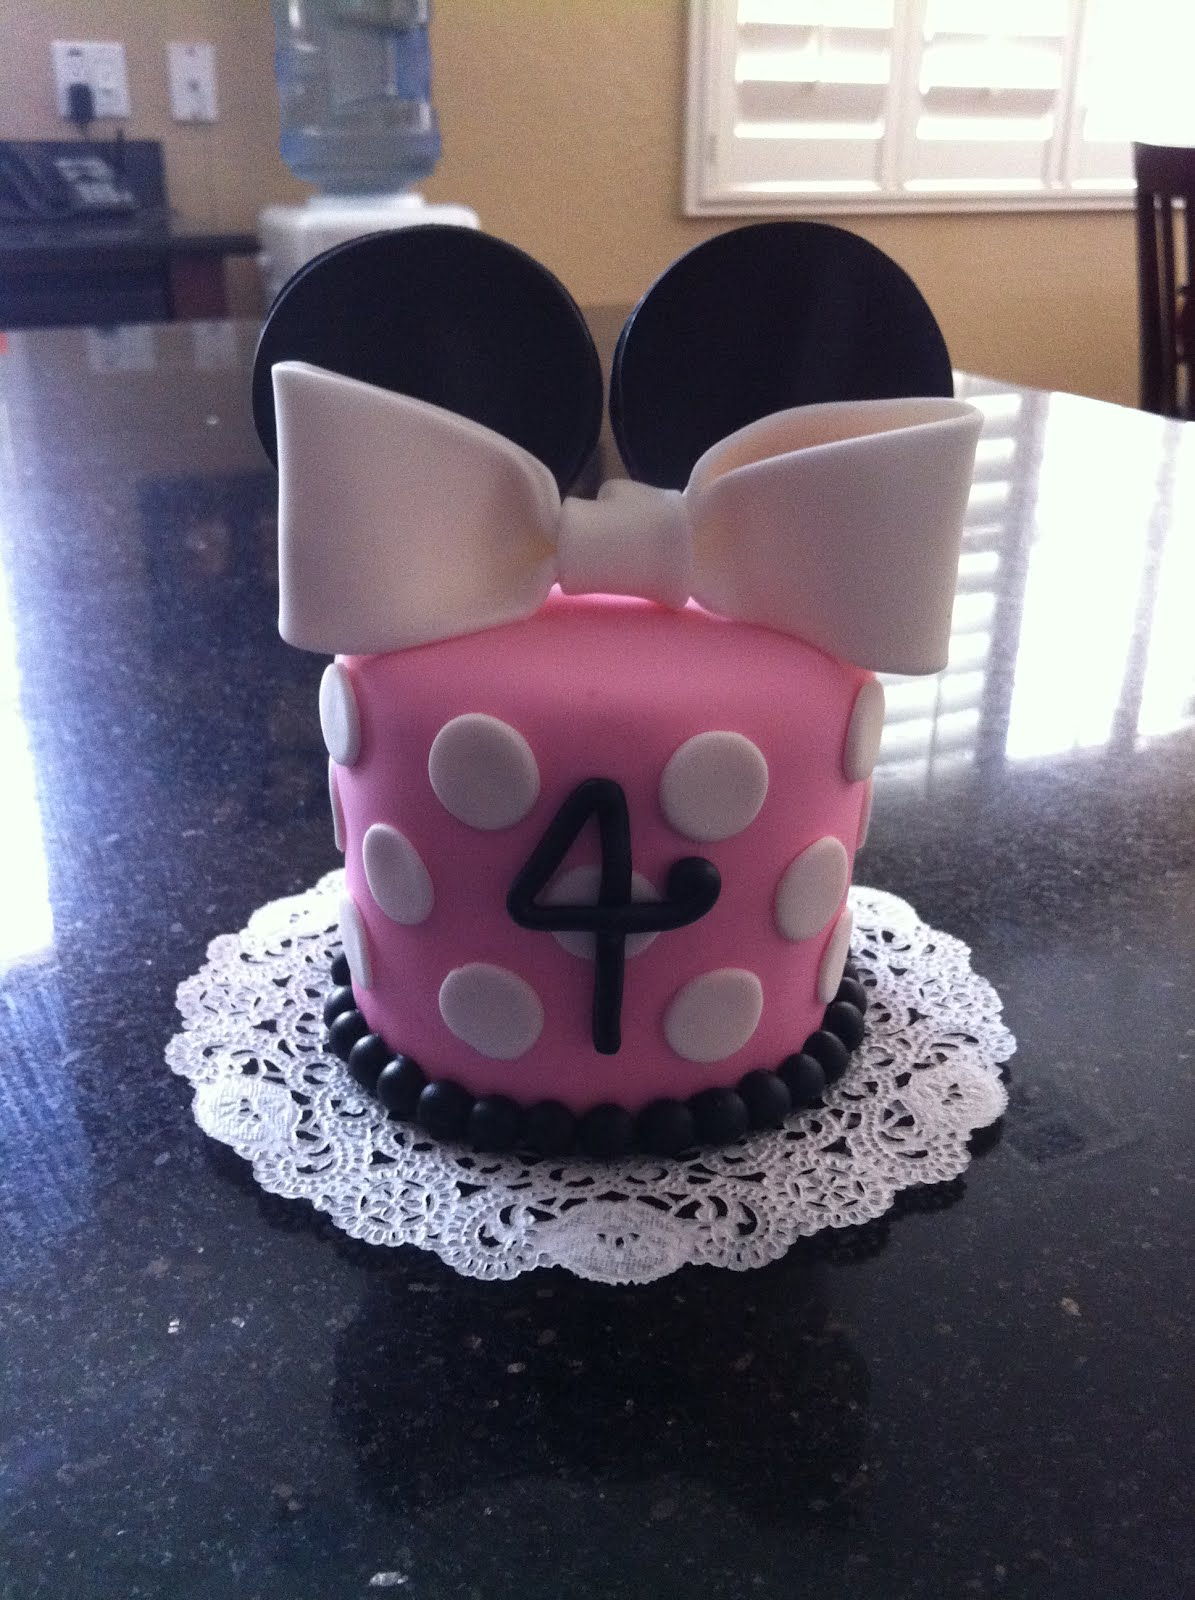 Cake Designs For 4 Year Girl : SASSY CAKES - Your Fondant Cake Design Destination: Minne ...